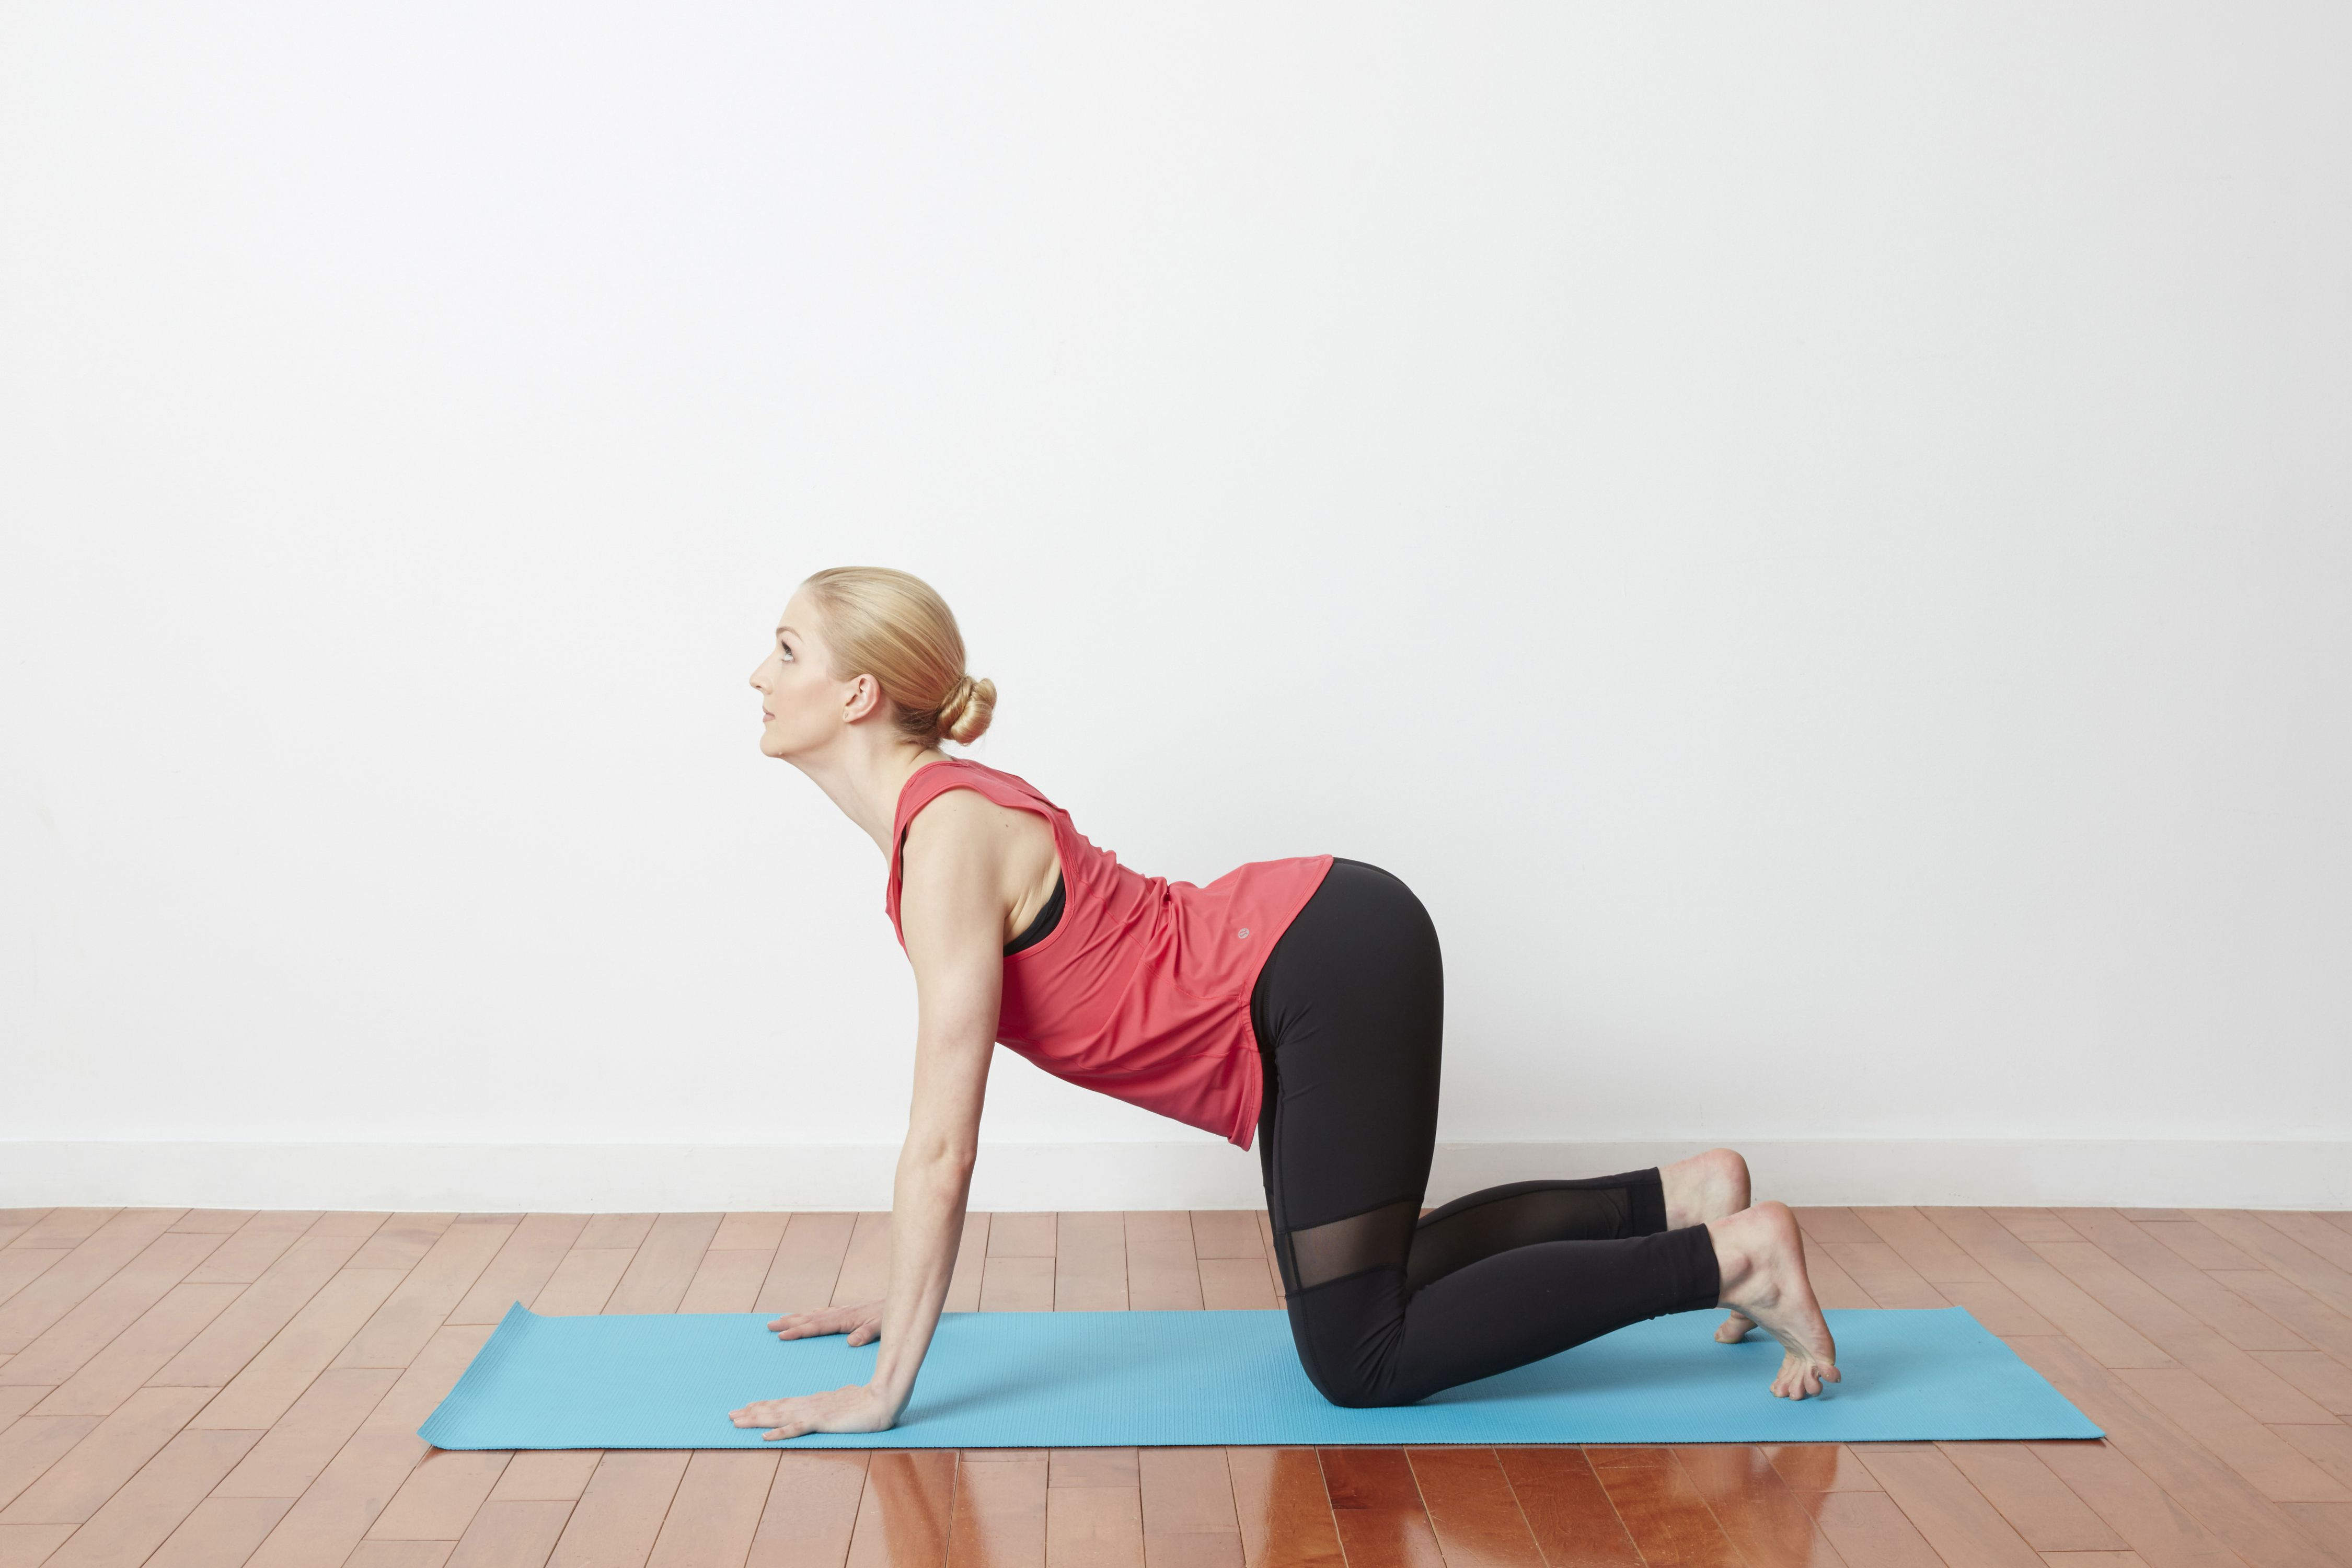 Pilates Exercises for Your Back Pain